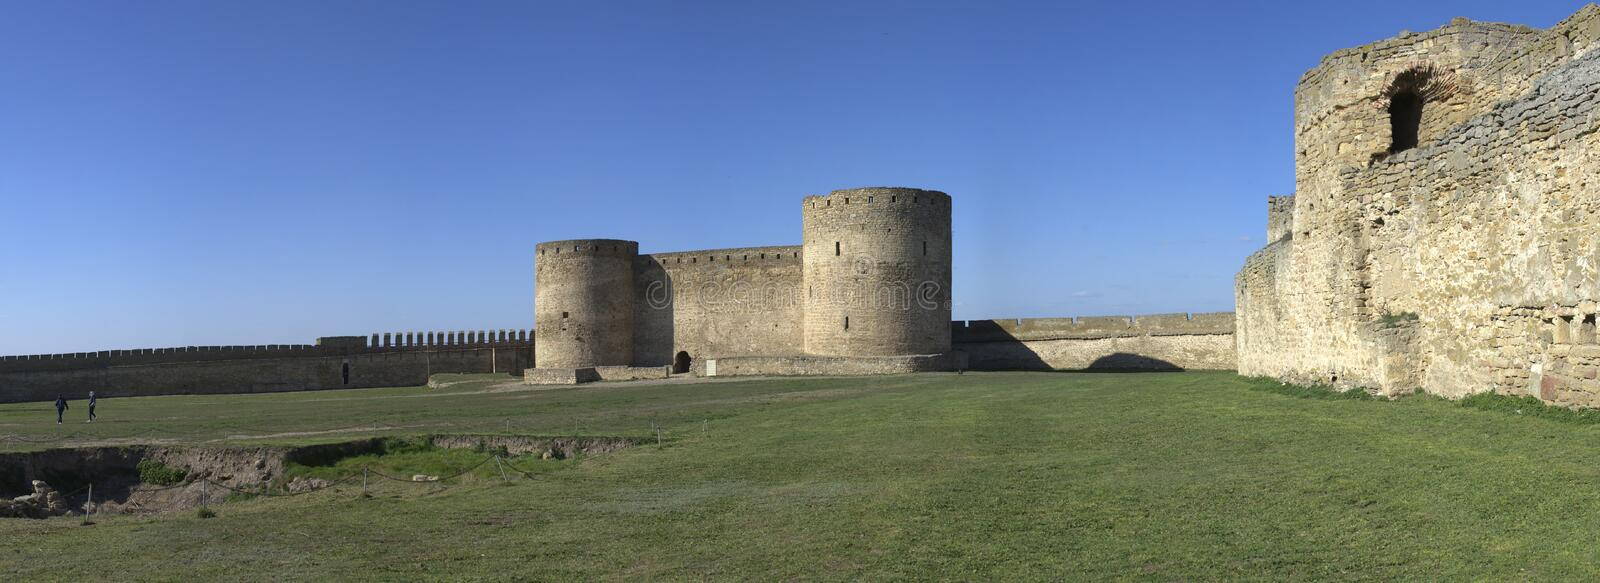 Fortress Walls of the Akkerman Citadel in Ukraine. Akkerman, Ukraine - 03.23.2019. Panoramic view of the Fortress walls and towers from the inside of the royalty free stock photography